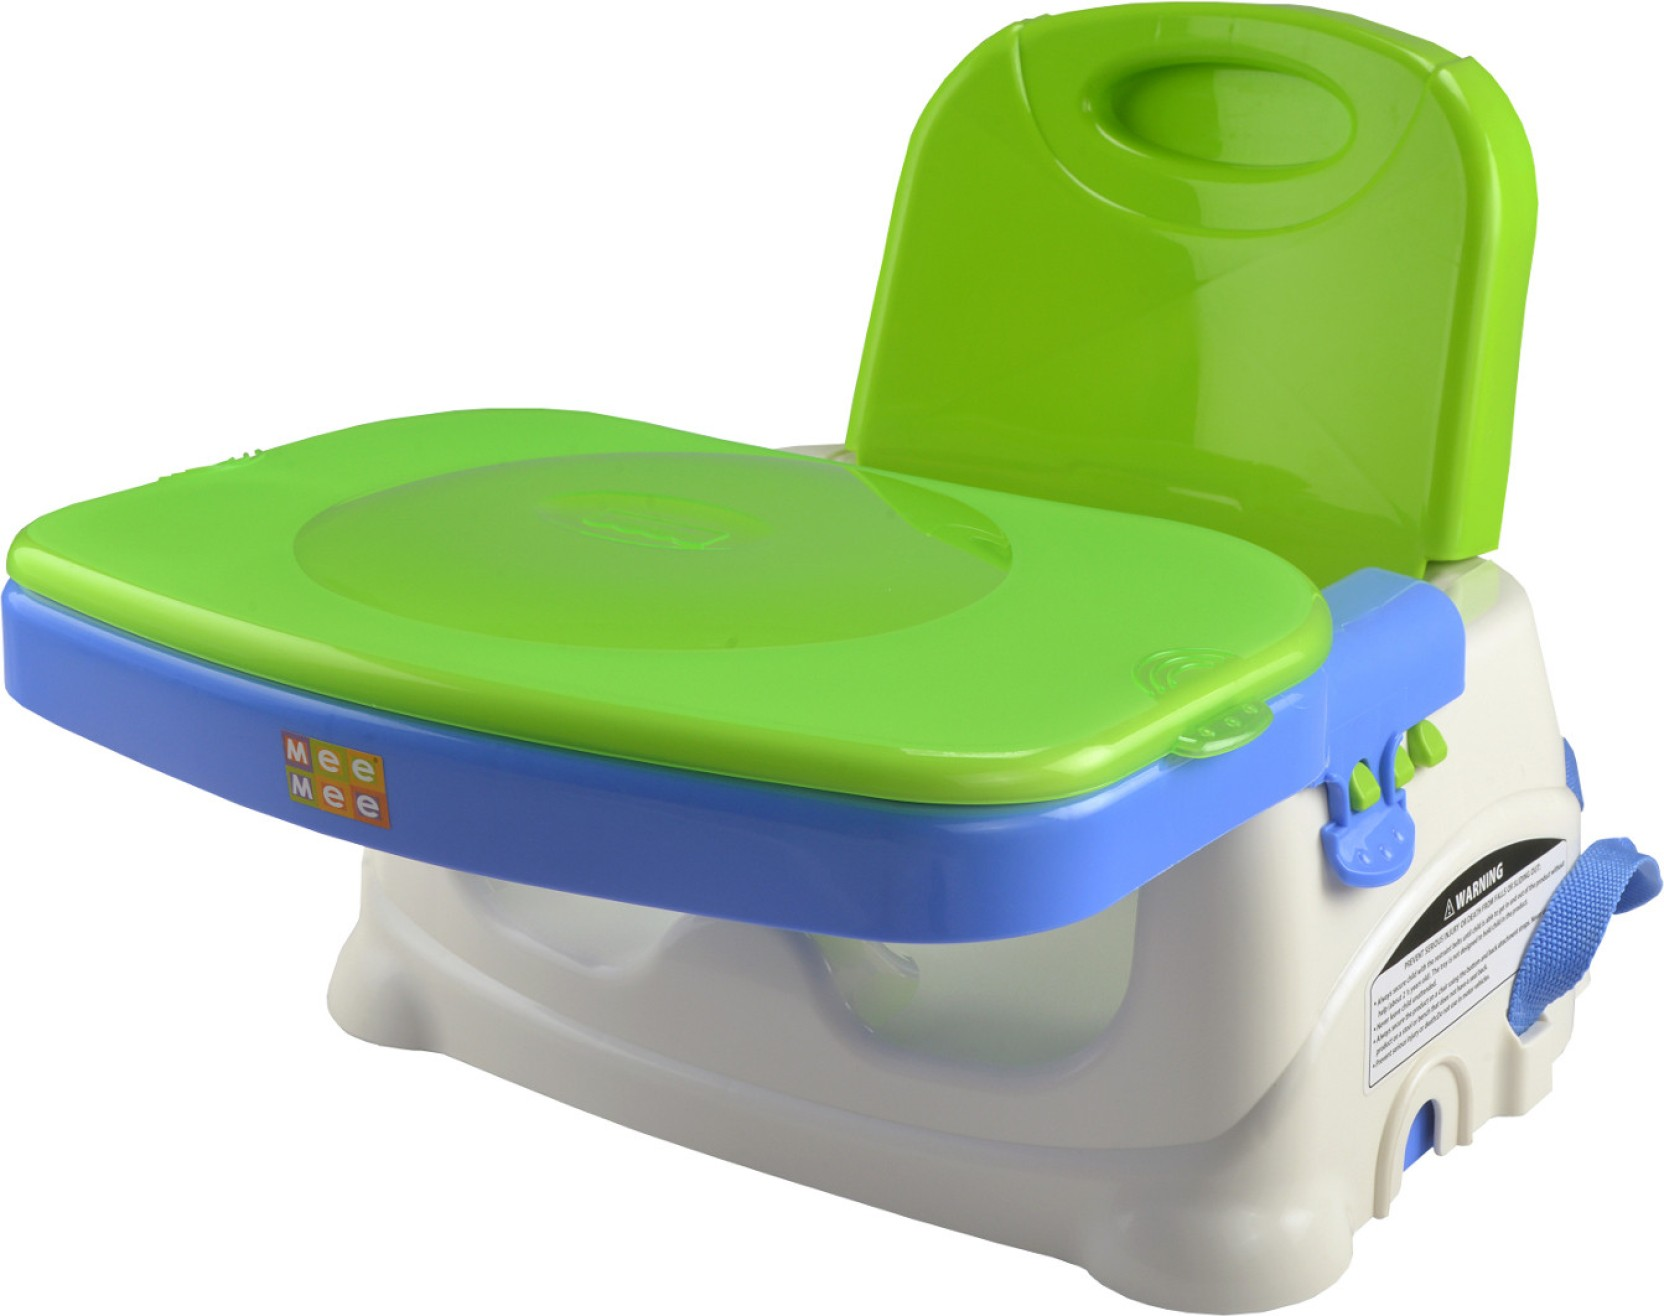 Mee Mee Baby Dining Chair Buy Baby Care Products in  : mm 1045 meemee high chair multifunctional high chair cum study original imaduv7y3y7sv558 from www.flipkart.com size 1664 x 1316 jpeg 154kB